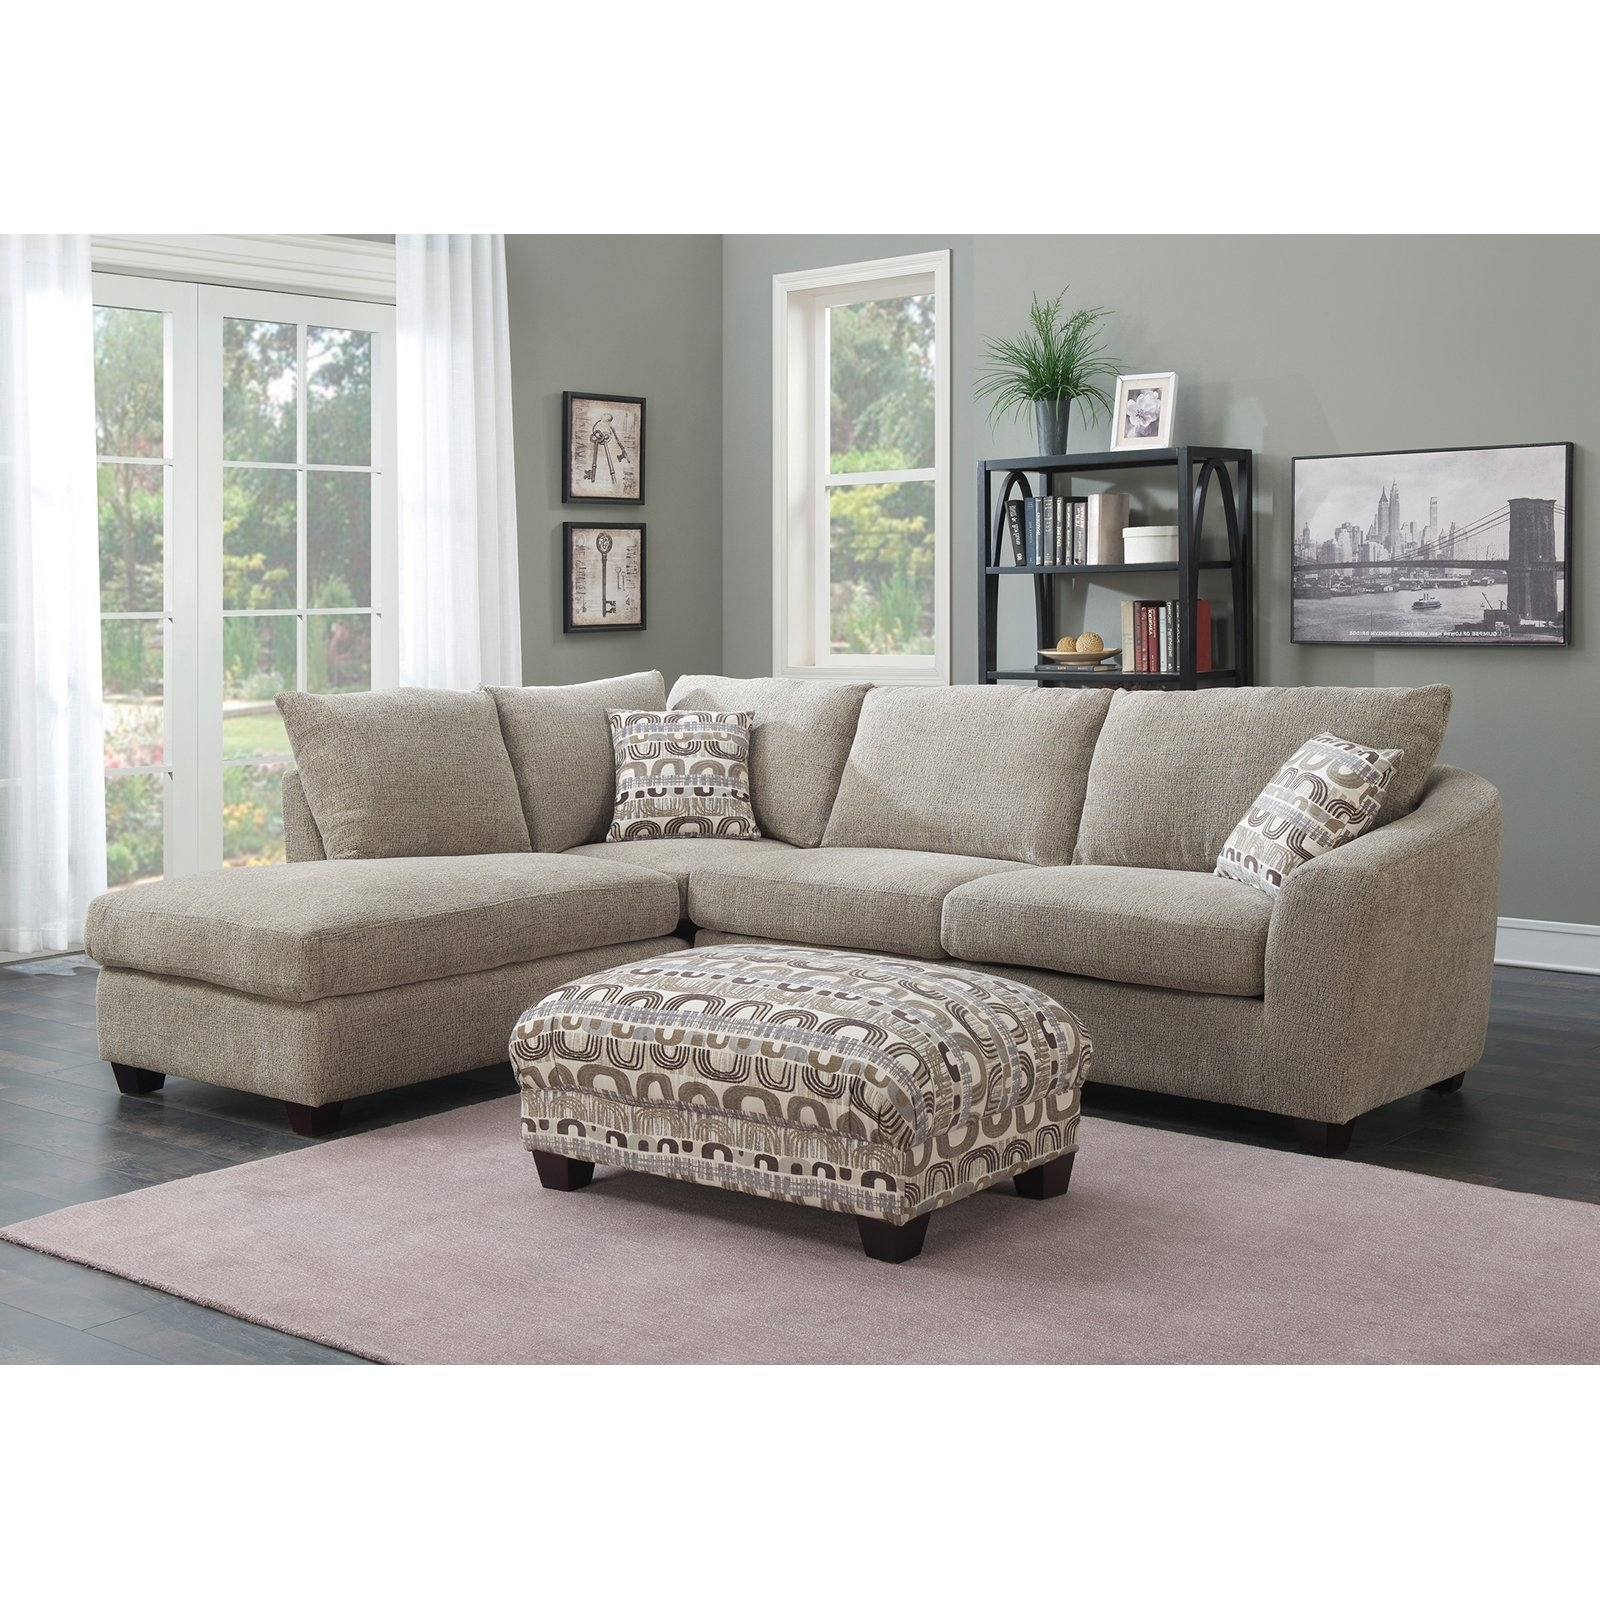 Emerald Home Urbana 2 Piece Sectional Sofa With Chaise – Walmart In 2018 Sectional Sofas With 2 Chaises (View 7 of 20)